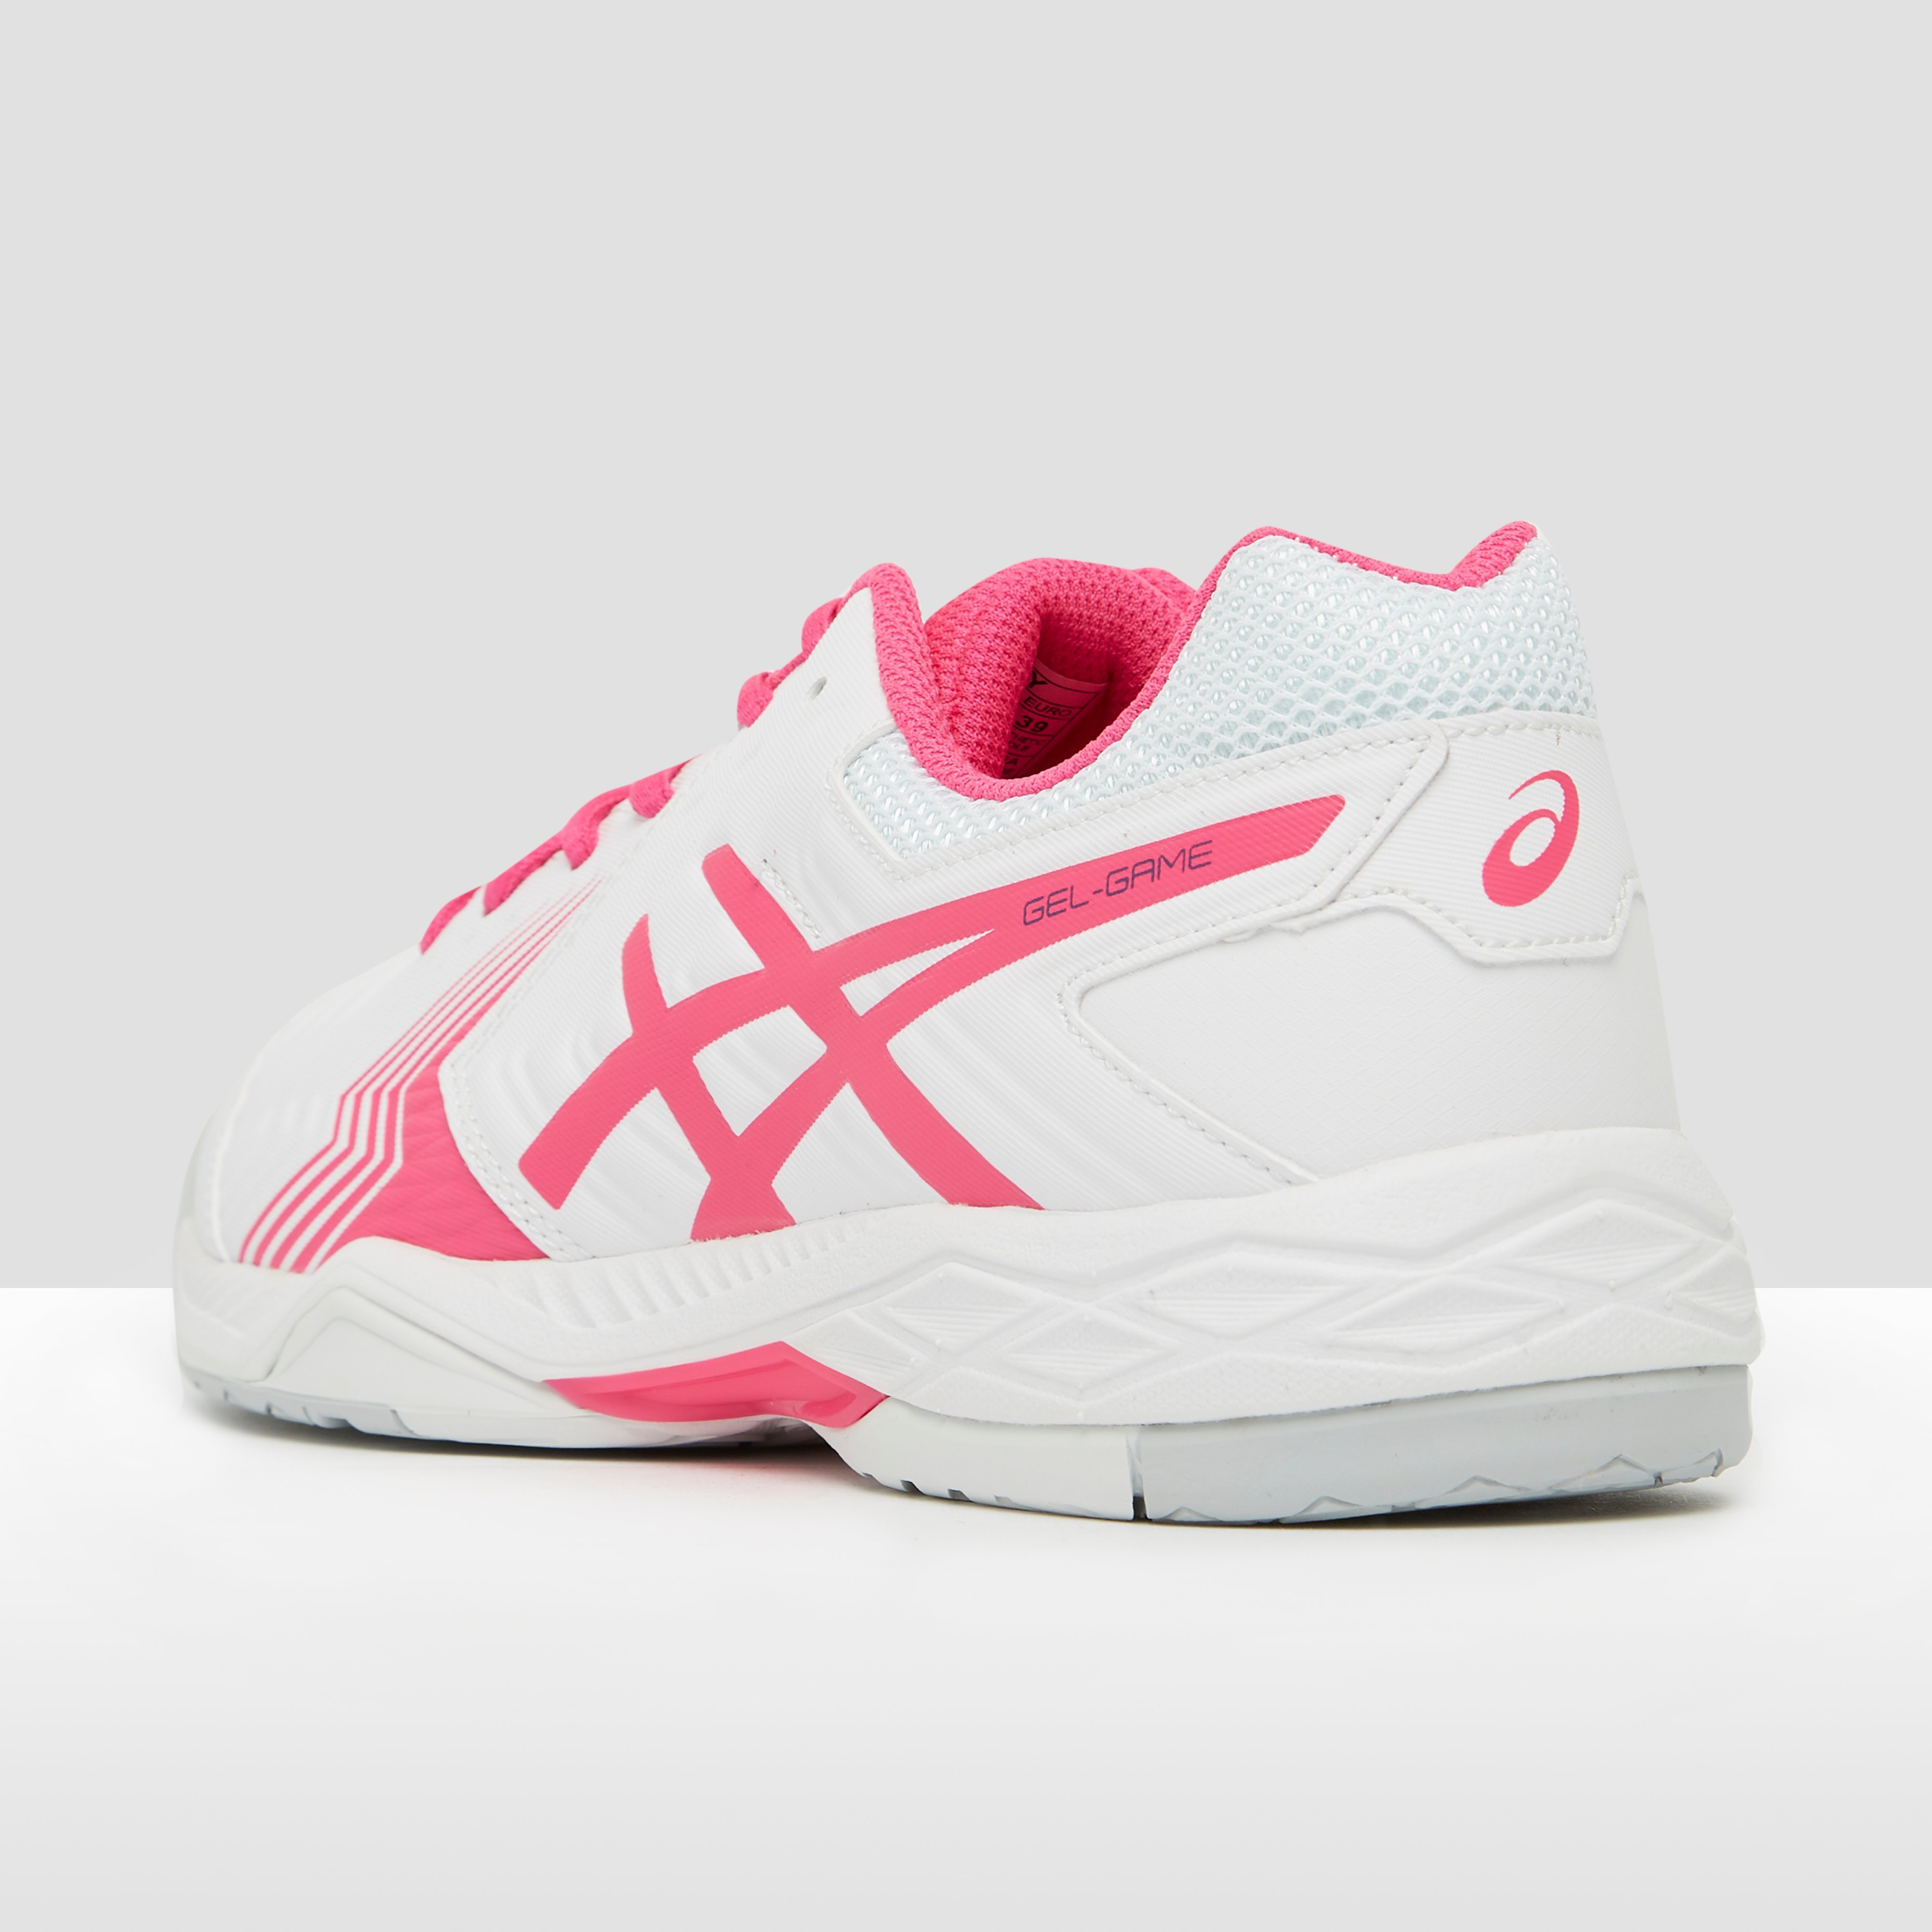 ASICS GEL-GAME 6 TENNISSCHOENEN WIT/ROZE DAMES